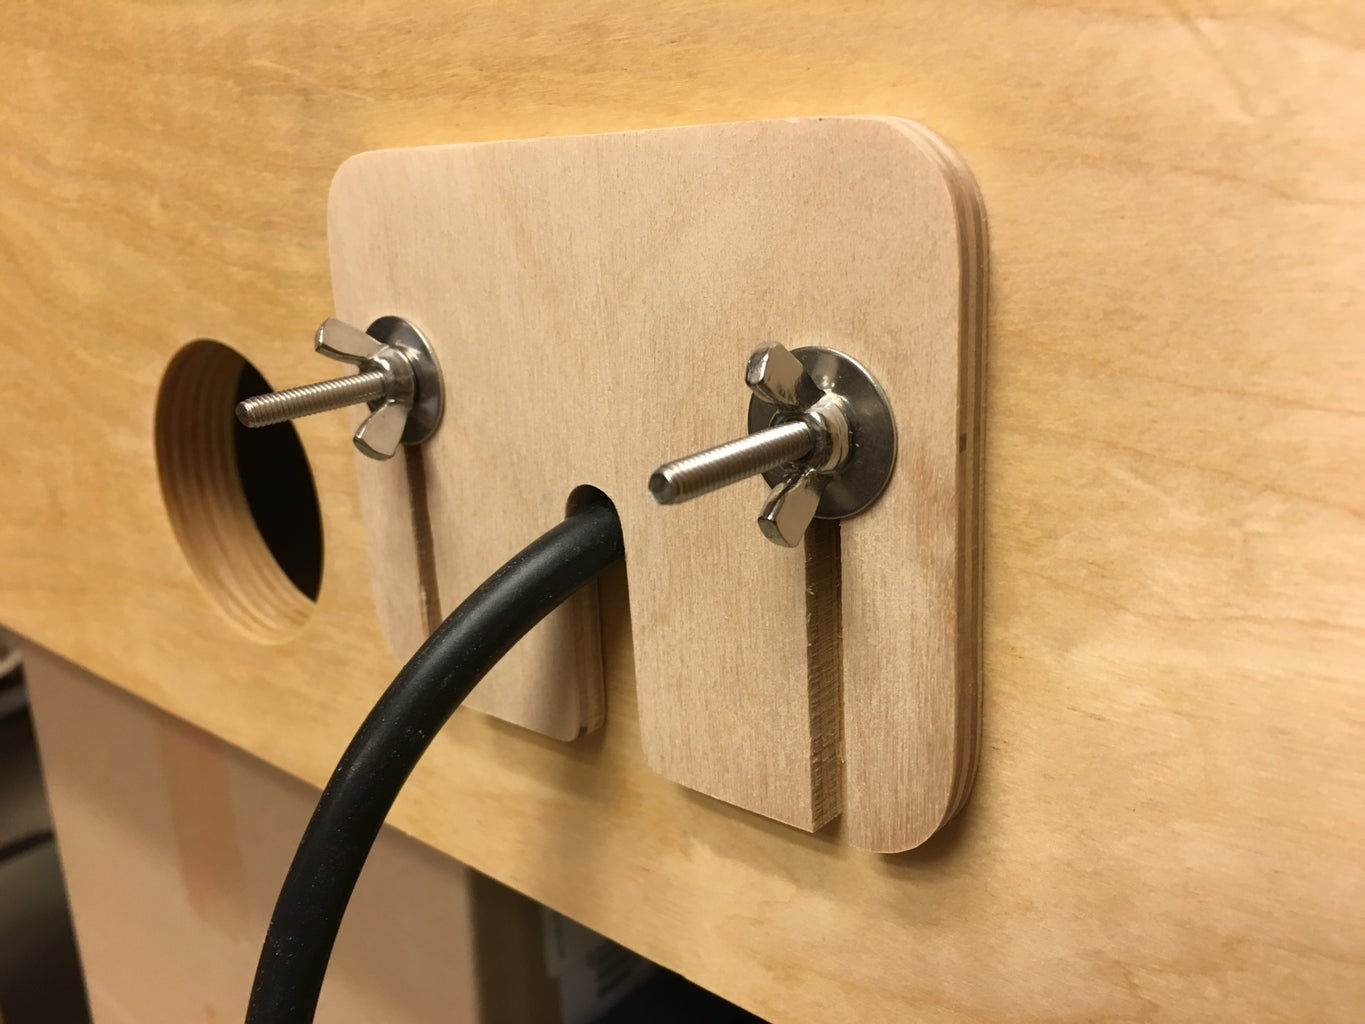 Add a Power Cord Opening